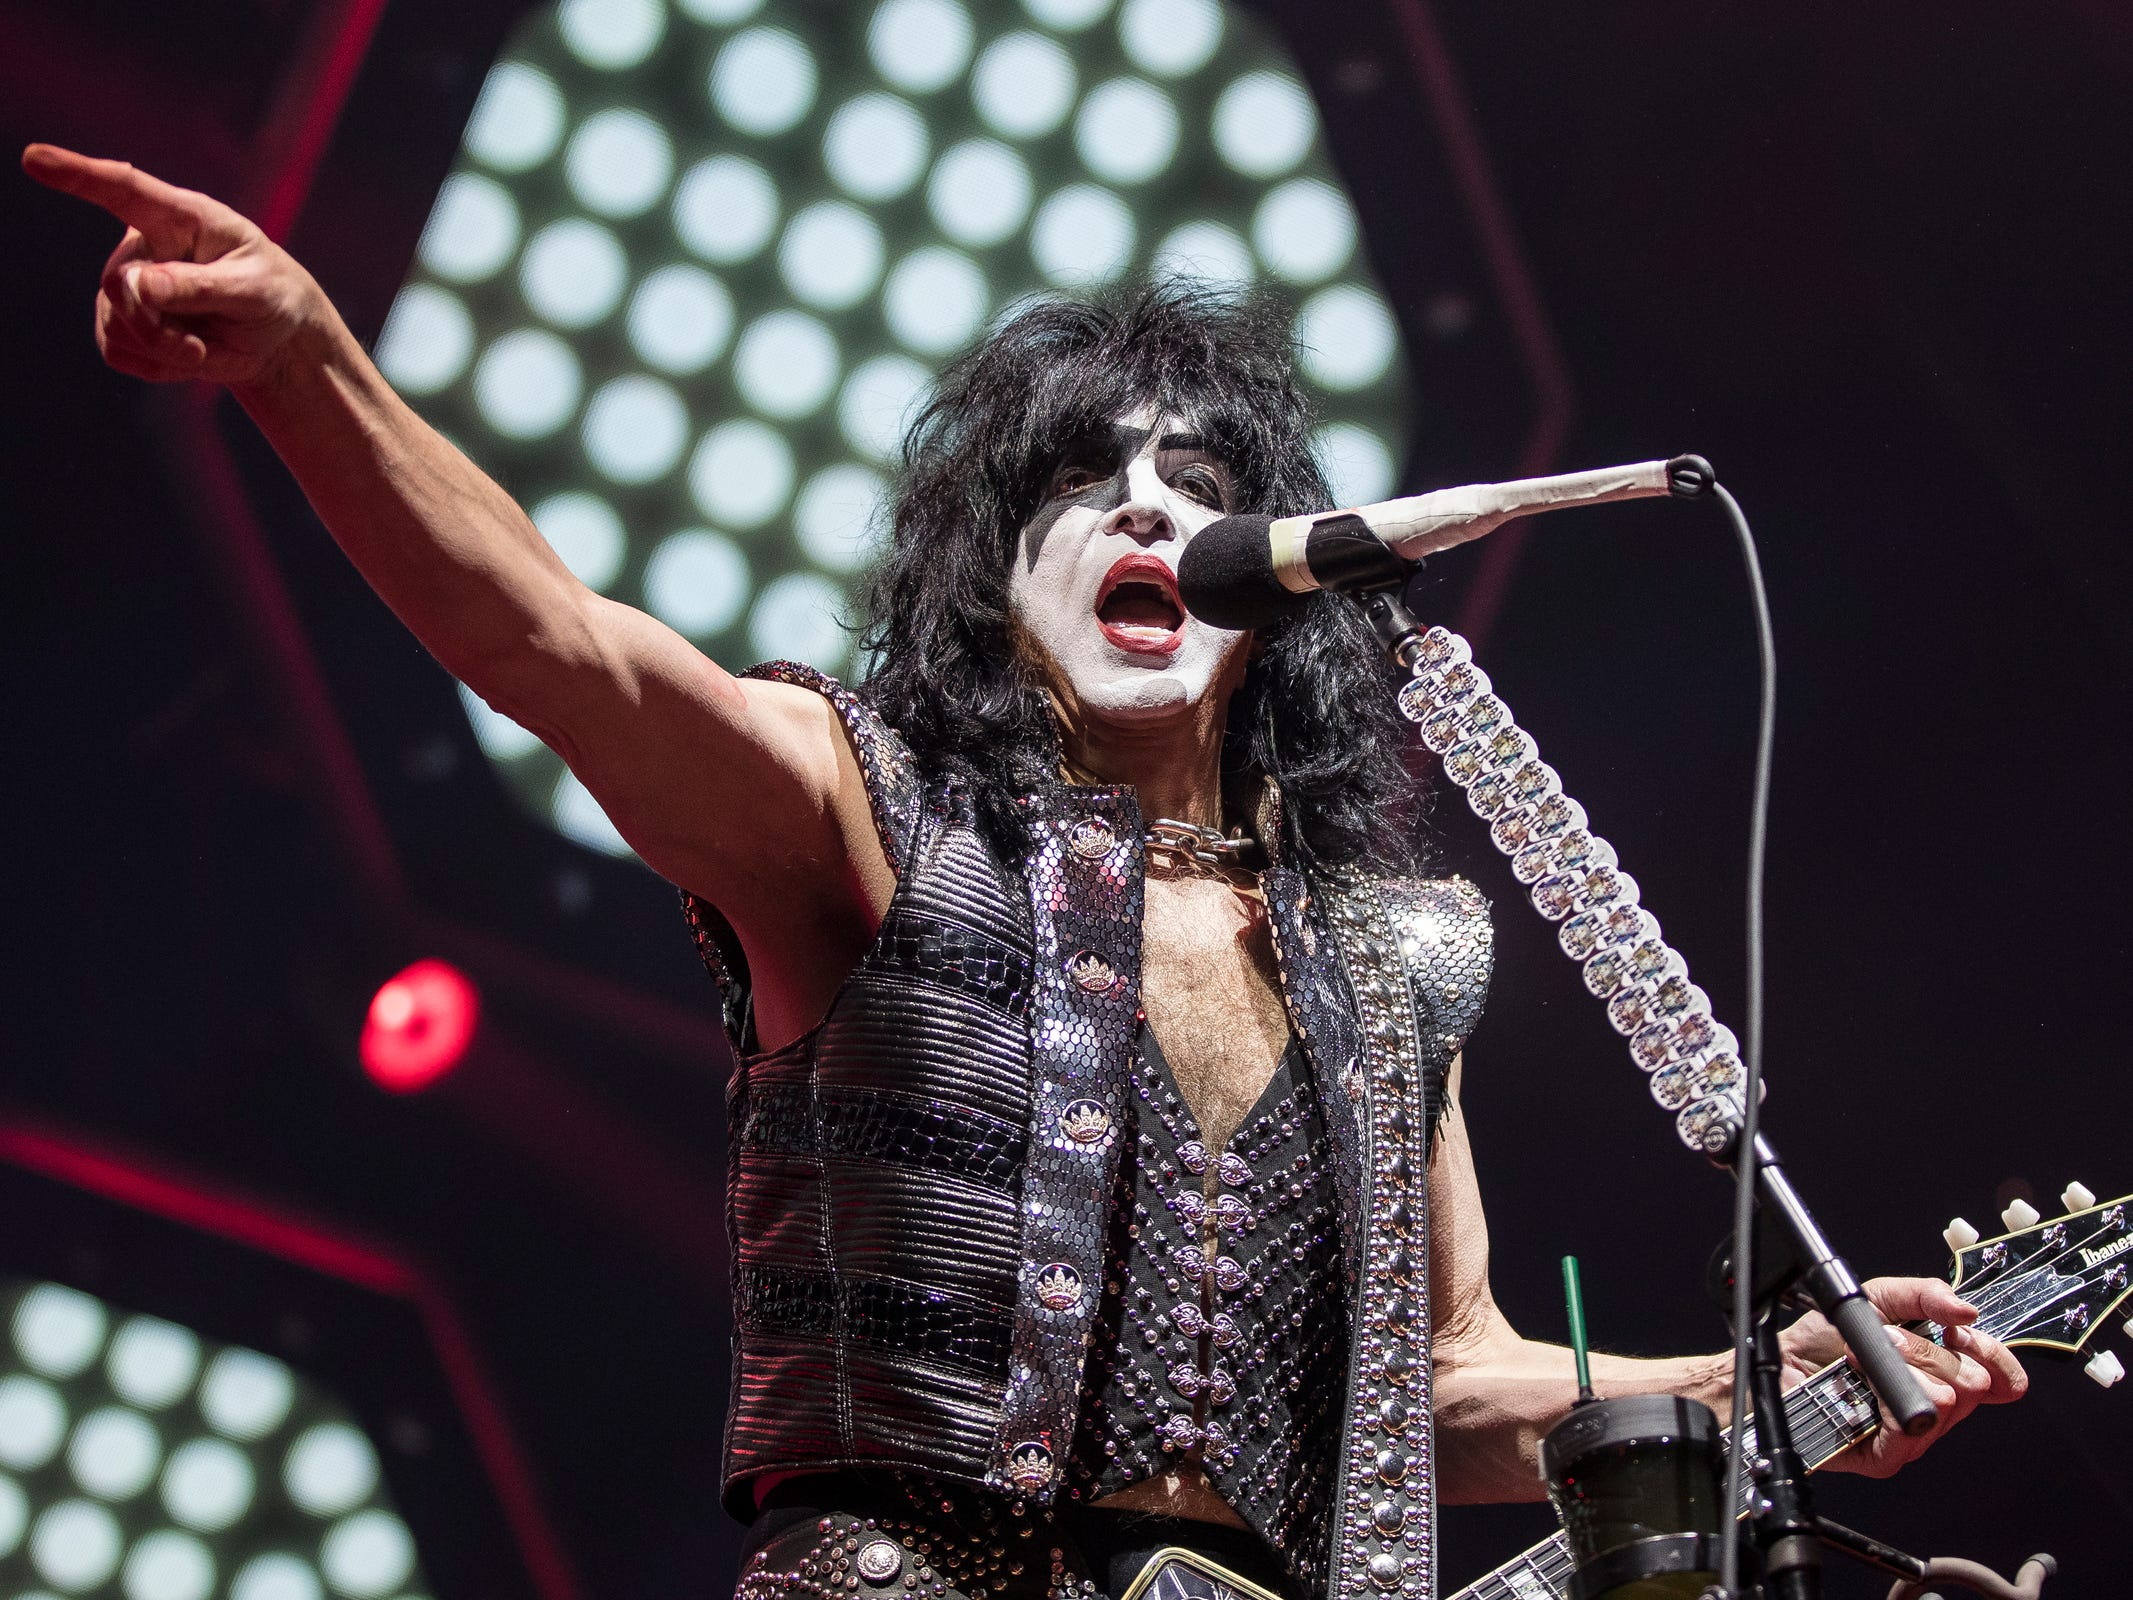 KISS performs their End of The Road world tour at the Little Caesars Arena in Detroit, Wednesday, March 13, 2019.